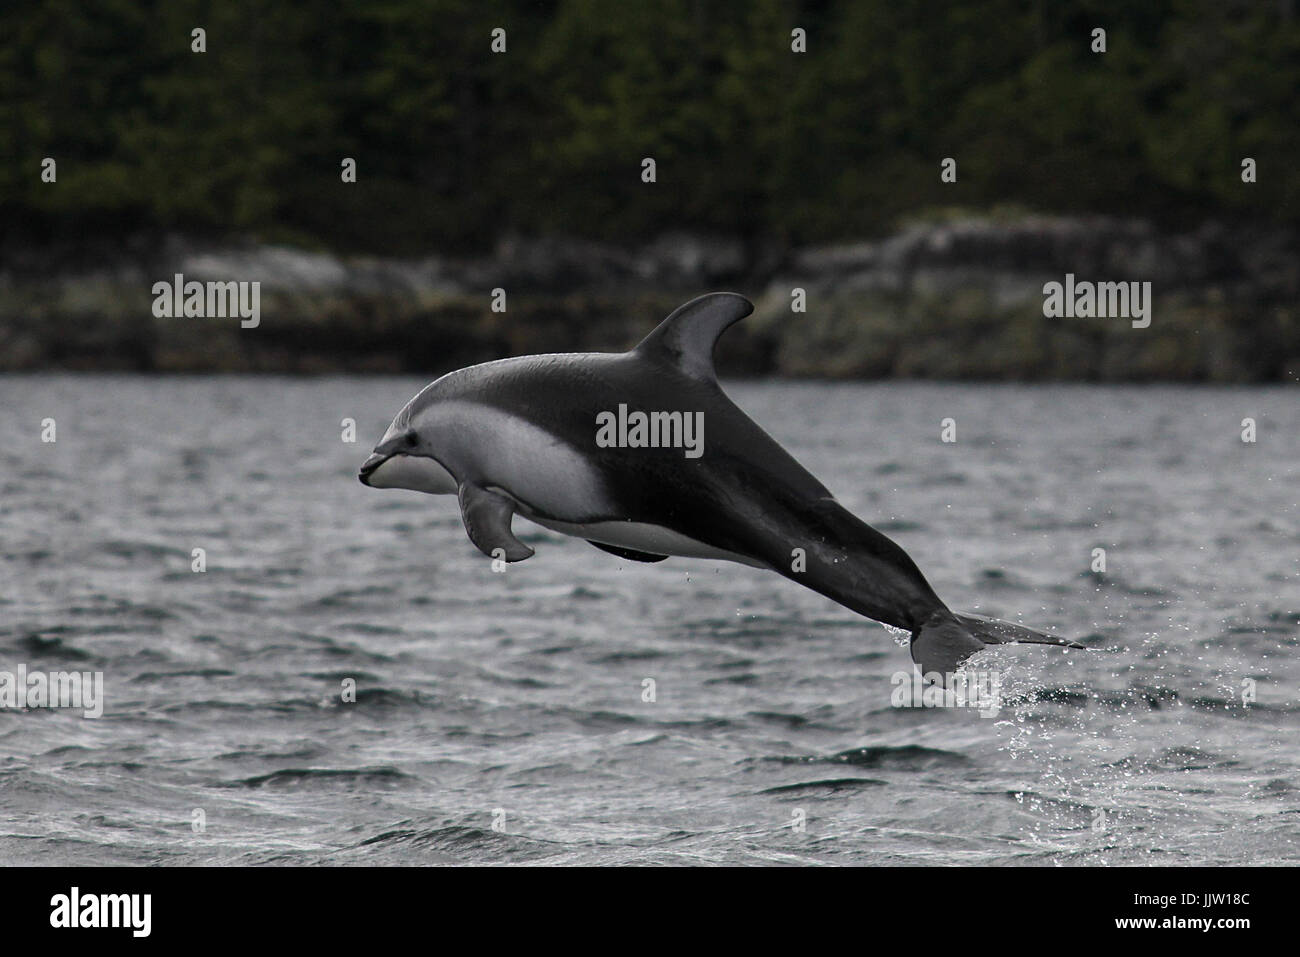 Pacific White Sided Dolphin jumping - Stock Image